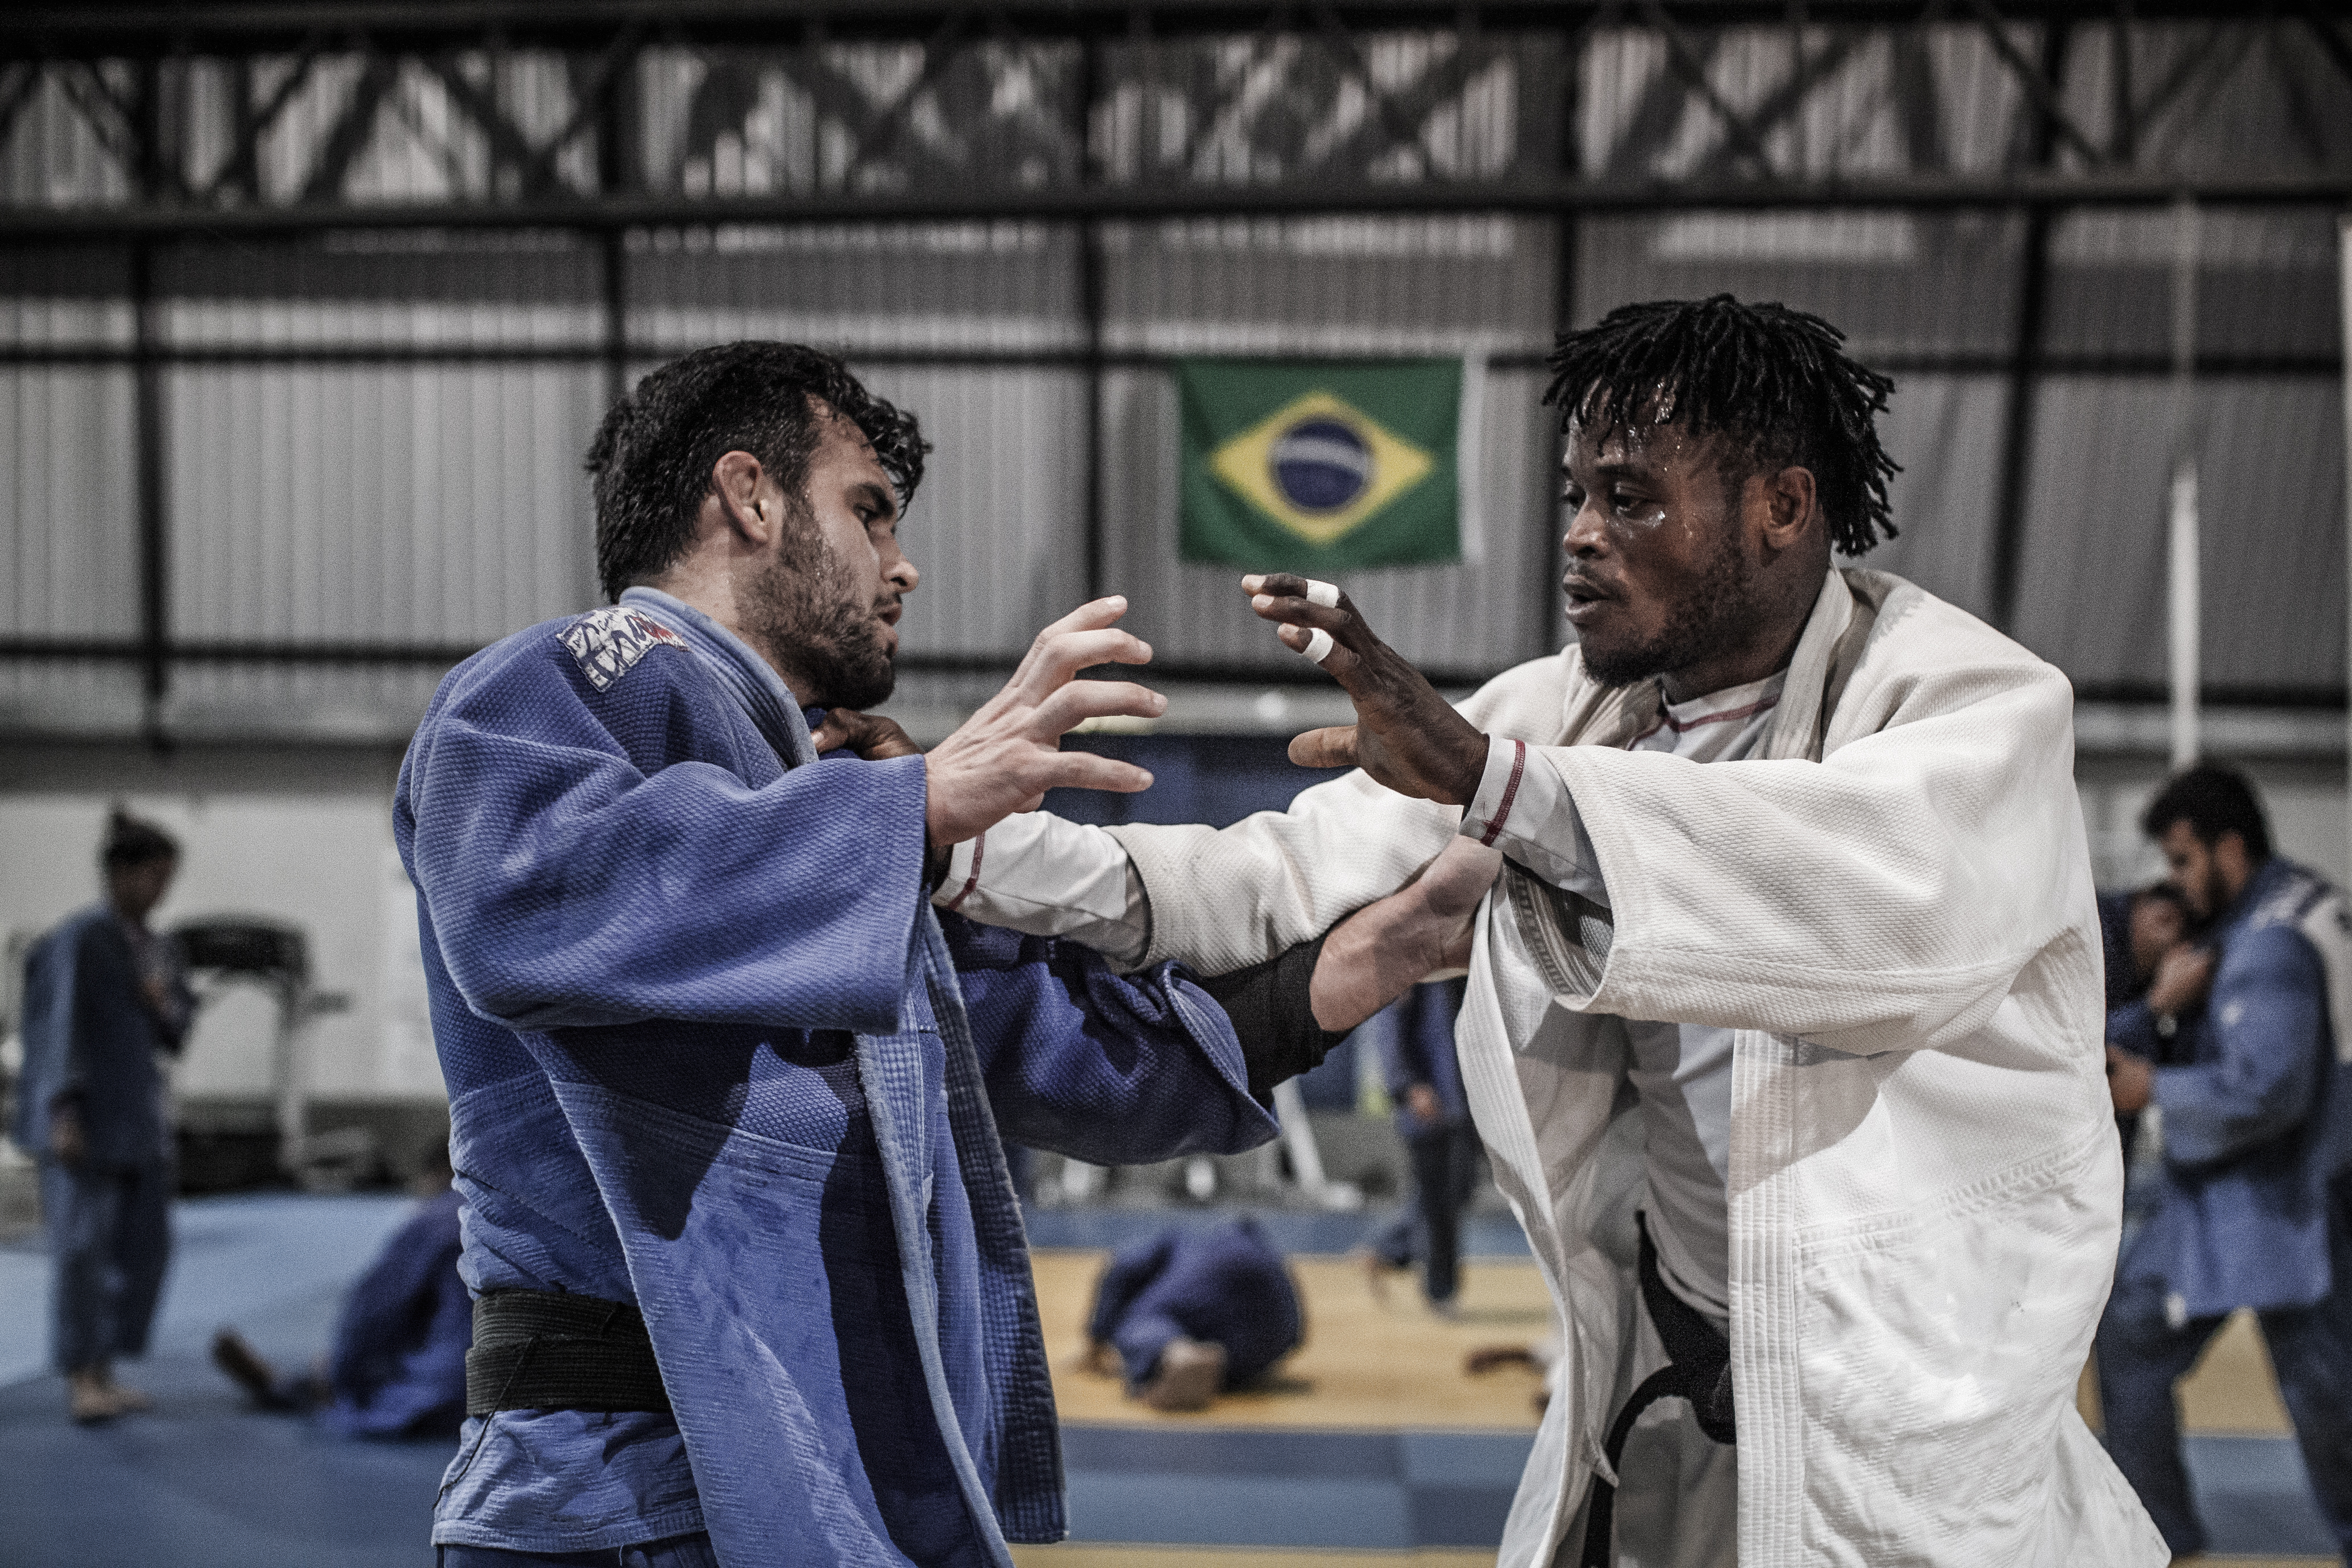 Brazil. Congolese judoka Popole Misenga trains for Rio 2016 Olympic Games